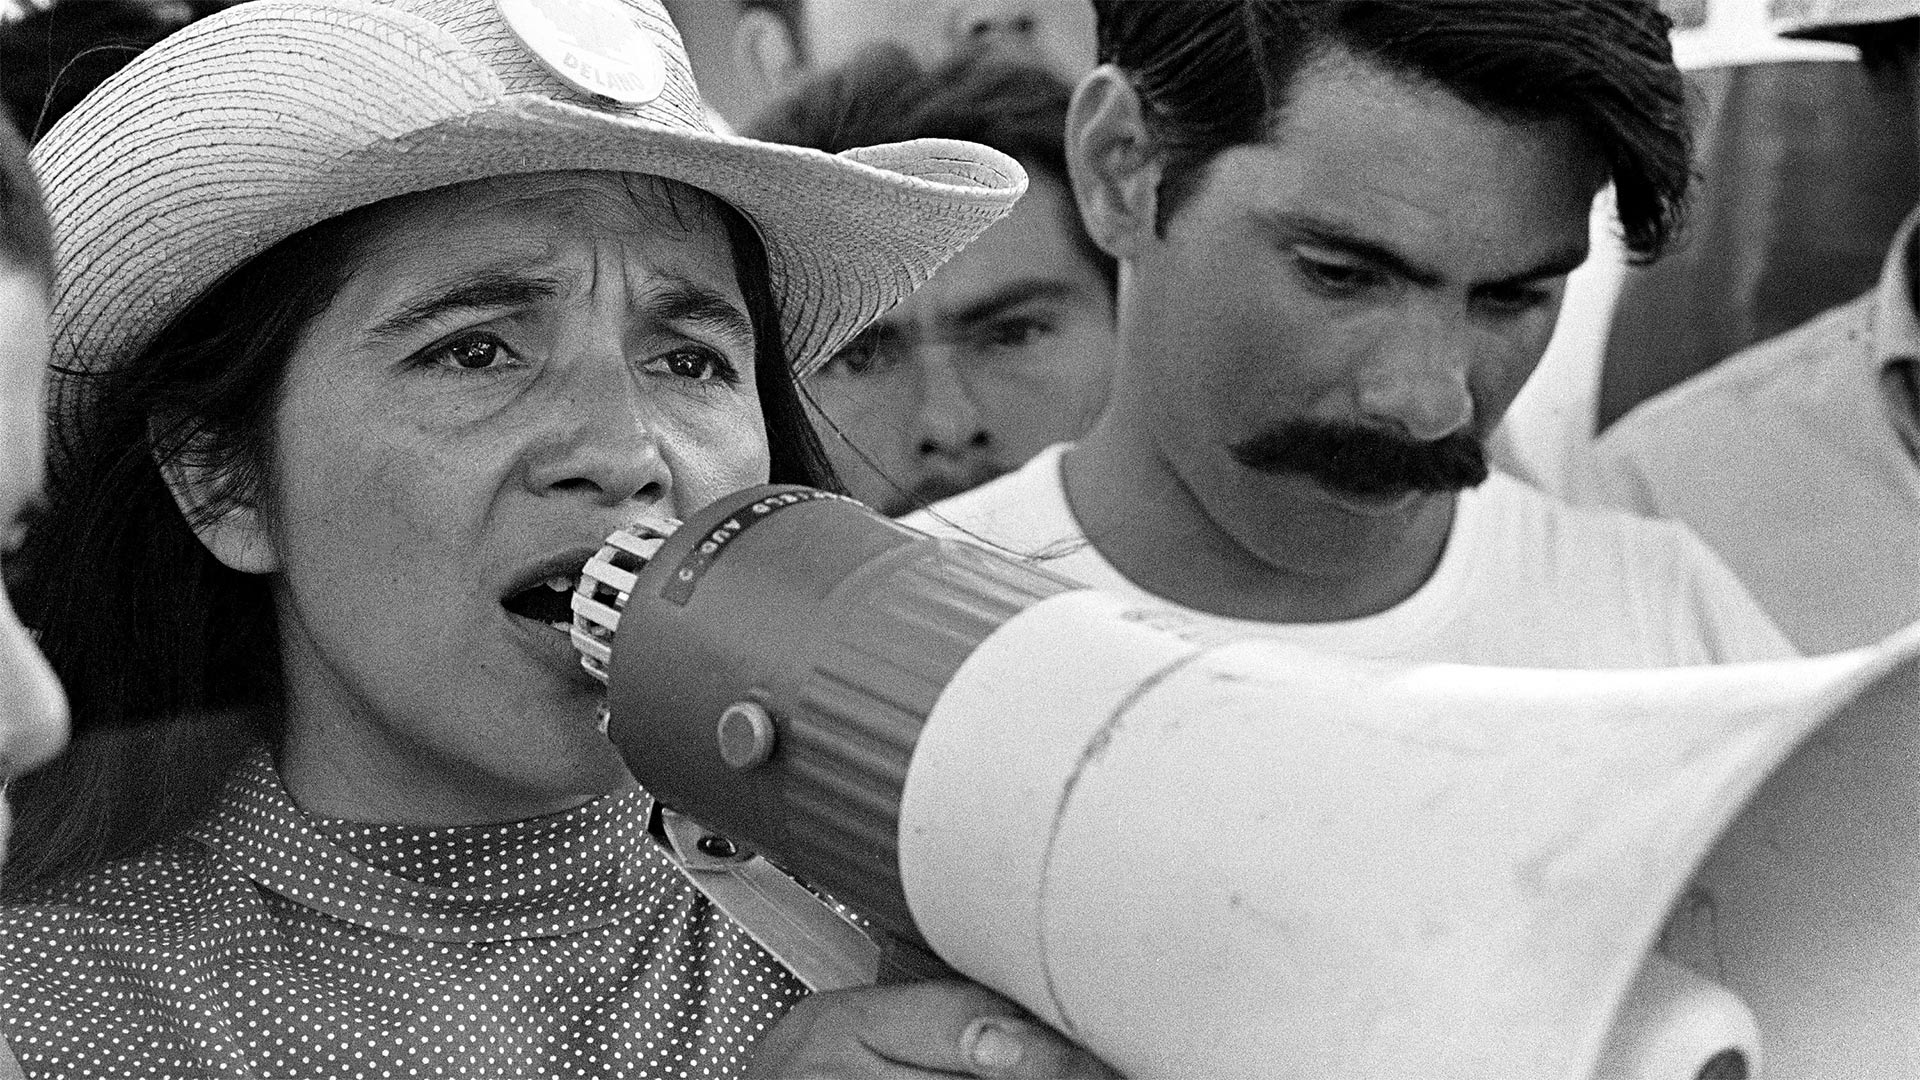 United Farm Workers leader Dolores Huerta organizing marchers on the 2nd day of March Coachella in Coachella, CA 1969.